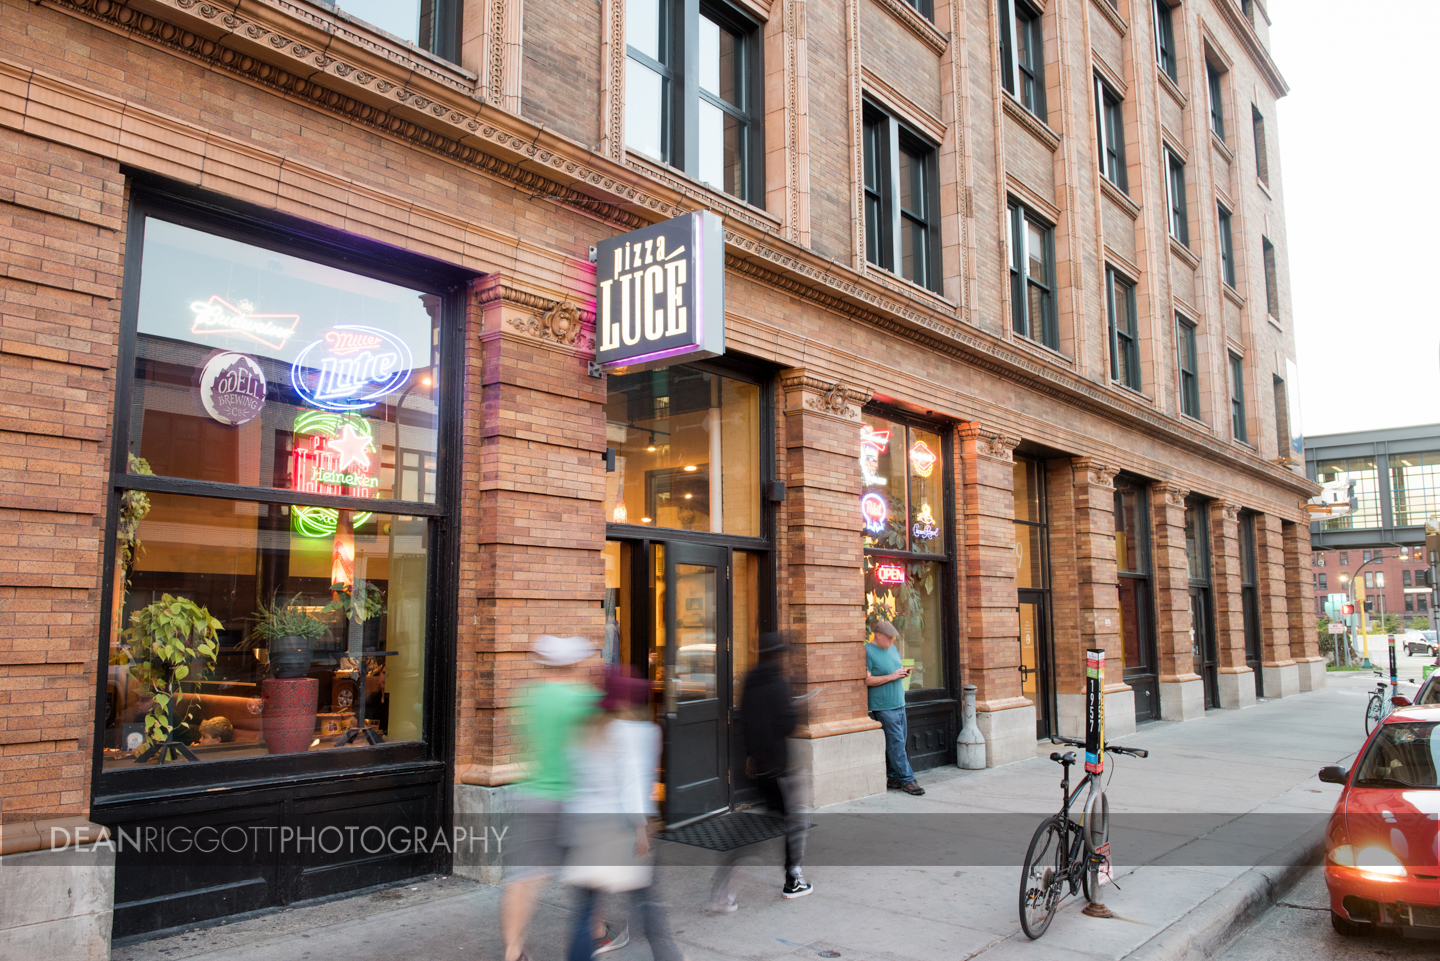 Highlights from recent shoots at Pizza Luce's seven locations in the Mpls-St Paul area. © Dean Riggott Photography http://www.riggottphoto.comHighlights from recent shoots at Pizza Luce's seven locations in the Mpls-St Paul area. © Dean Riggott Photography http://www.riggottphoto.com